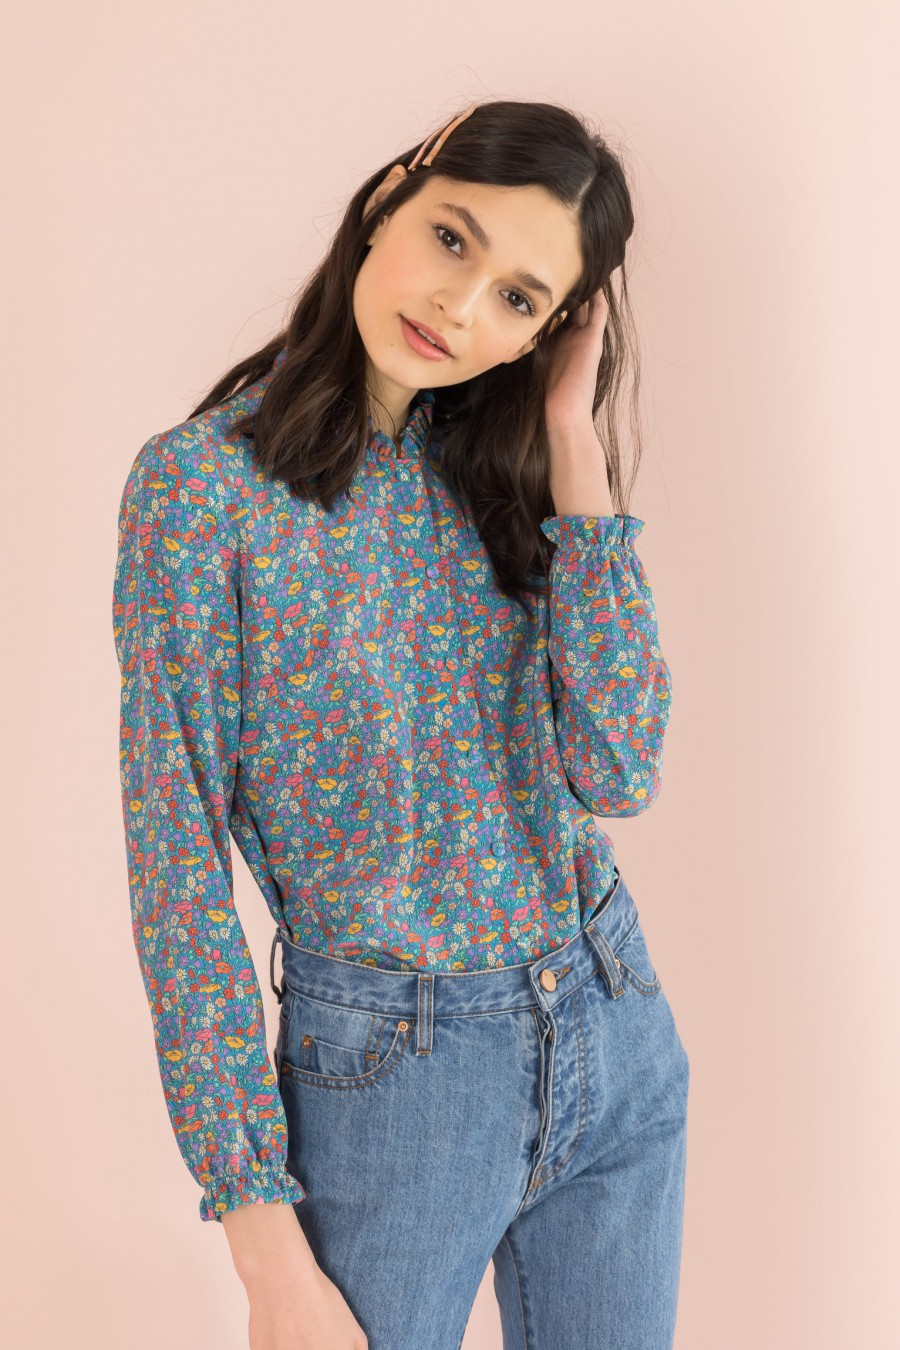 flowered shirt with pattern and ruffle on the neckline